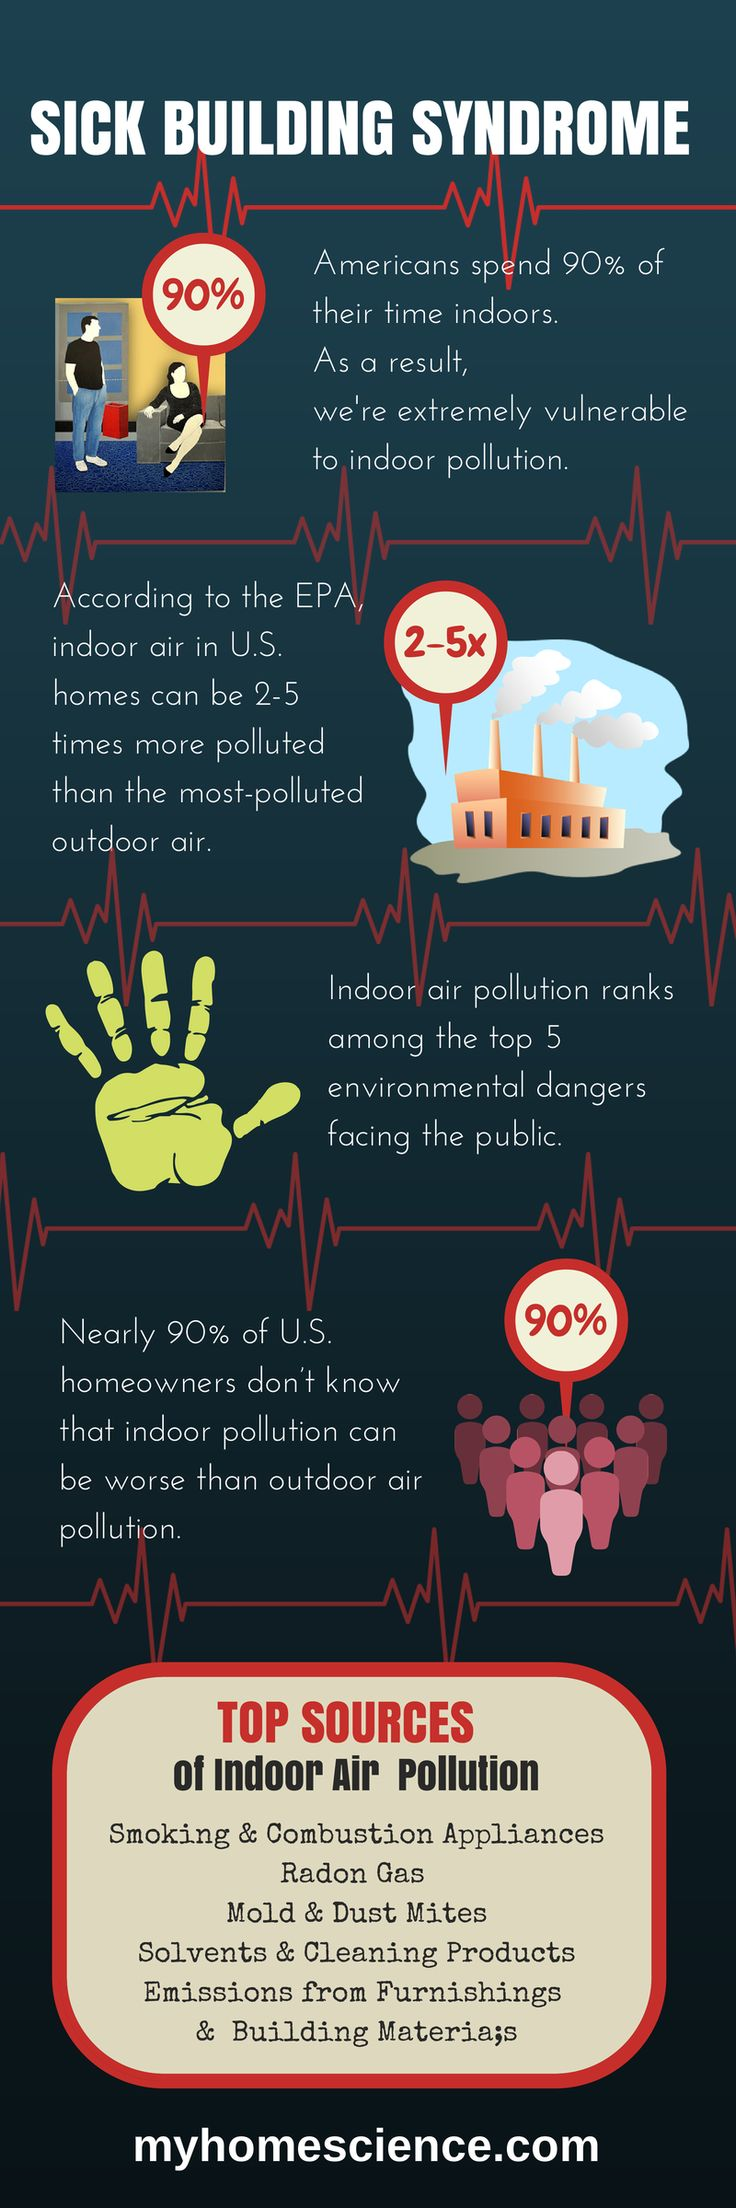 Sick Building Syndrome: is your home healthy?